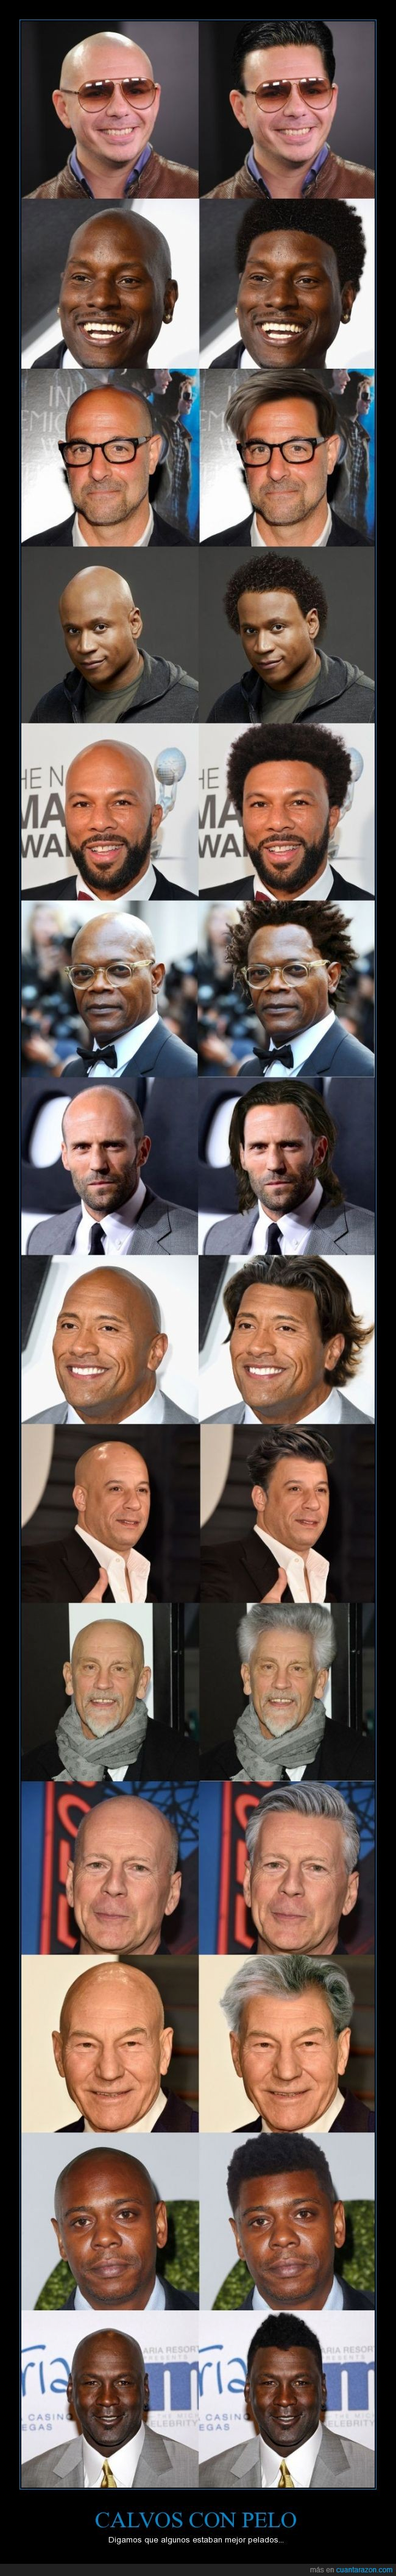 Bruce Willis,calvo,Jason Statham,Jordan está algo desmejoradillo,montaje,pelo,photoshop,Pitbull,rapado,The Rock